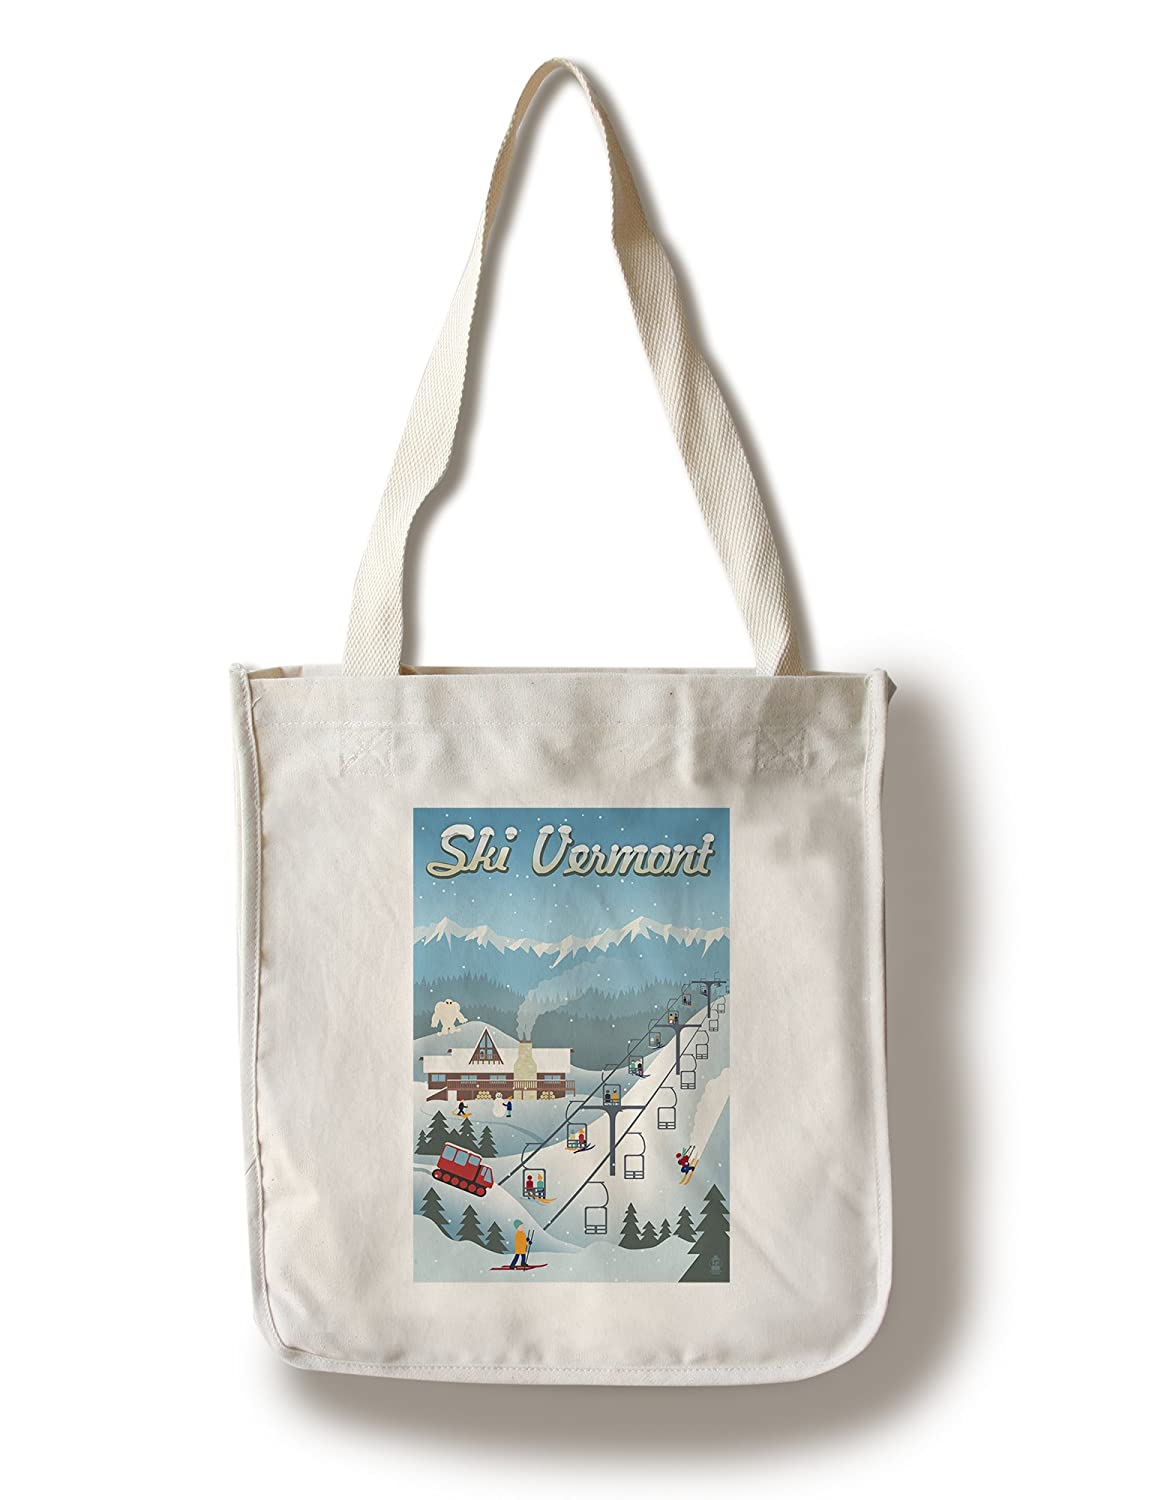 Vermont – レトロSki Resort Canvas Tote Bag LANT-47352-TT B01841PJHK Canvas Tote Bag